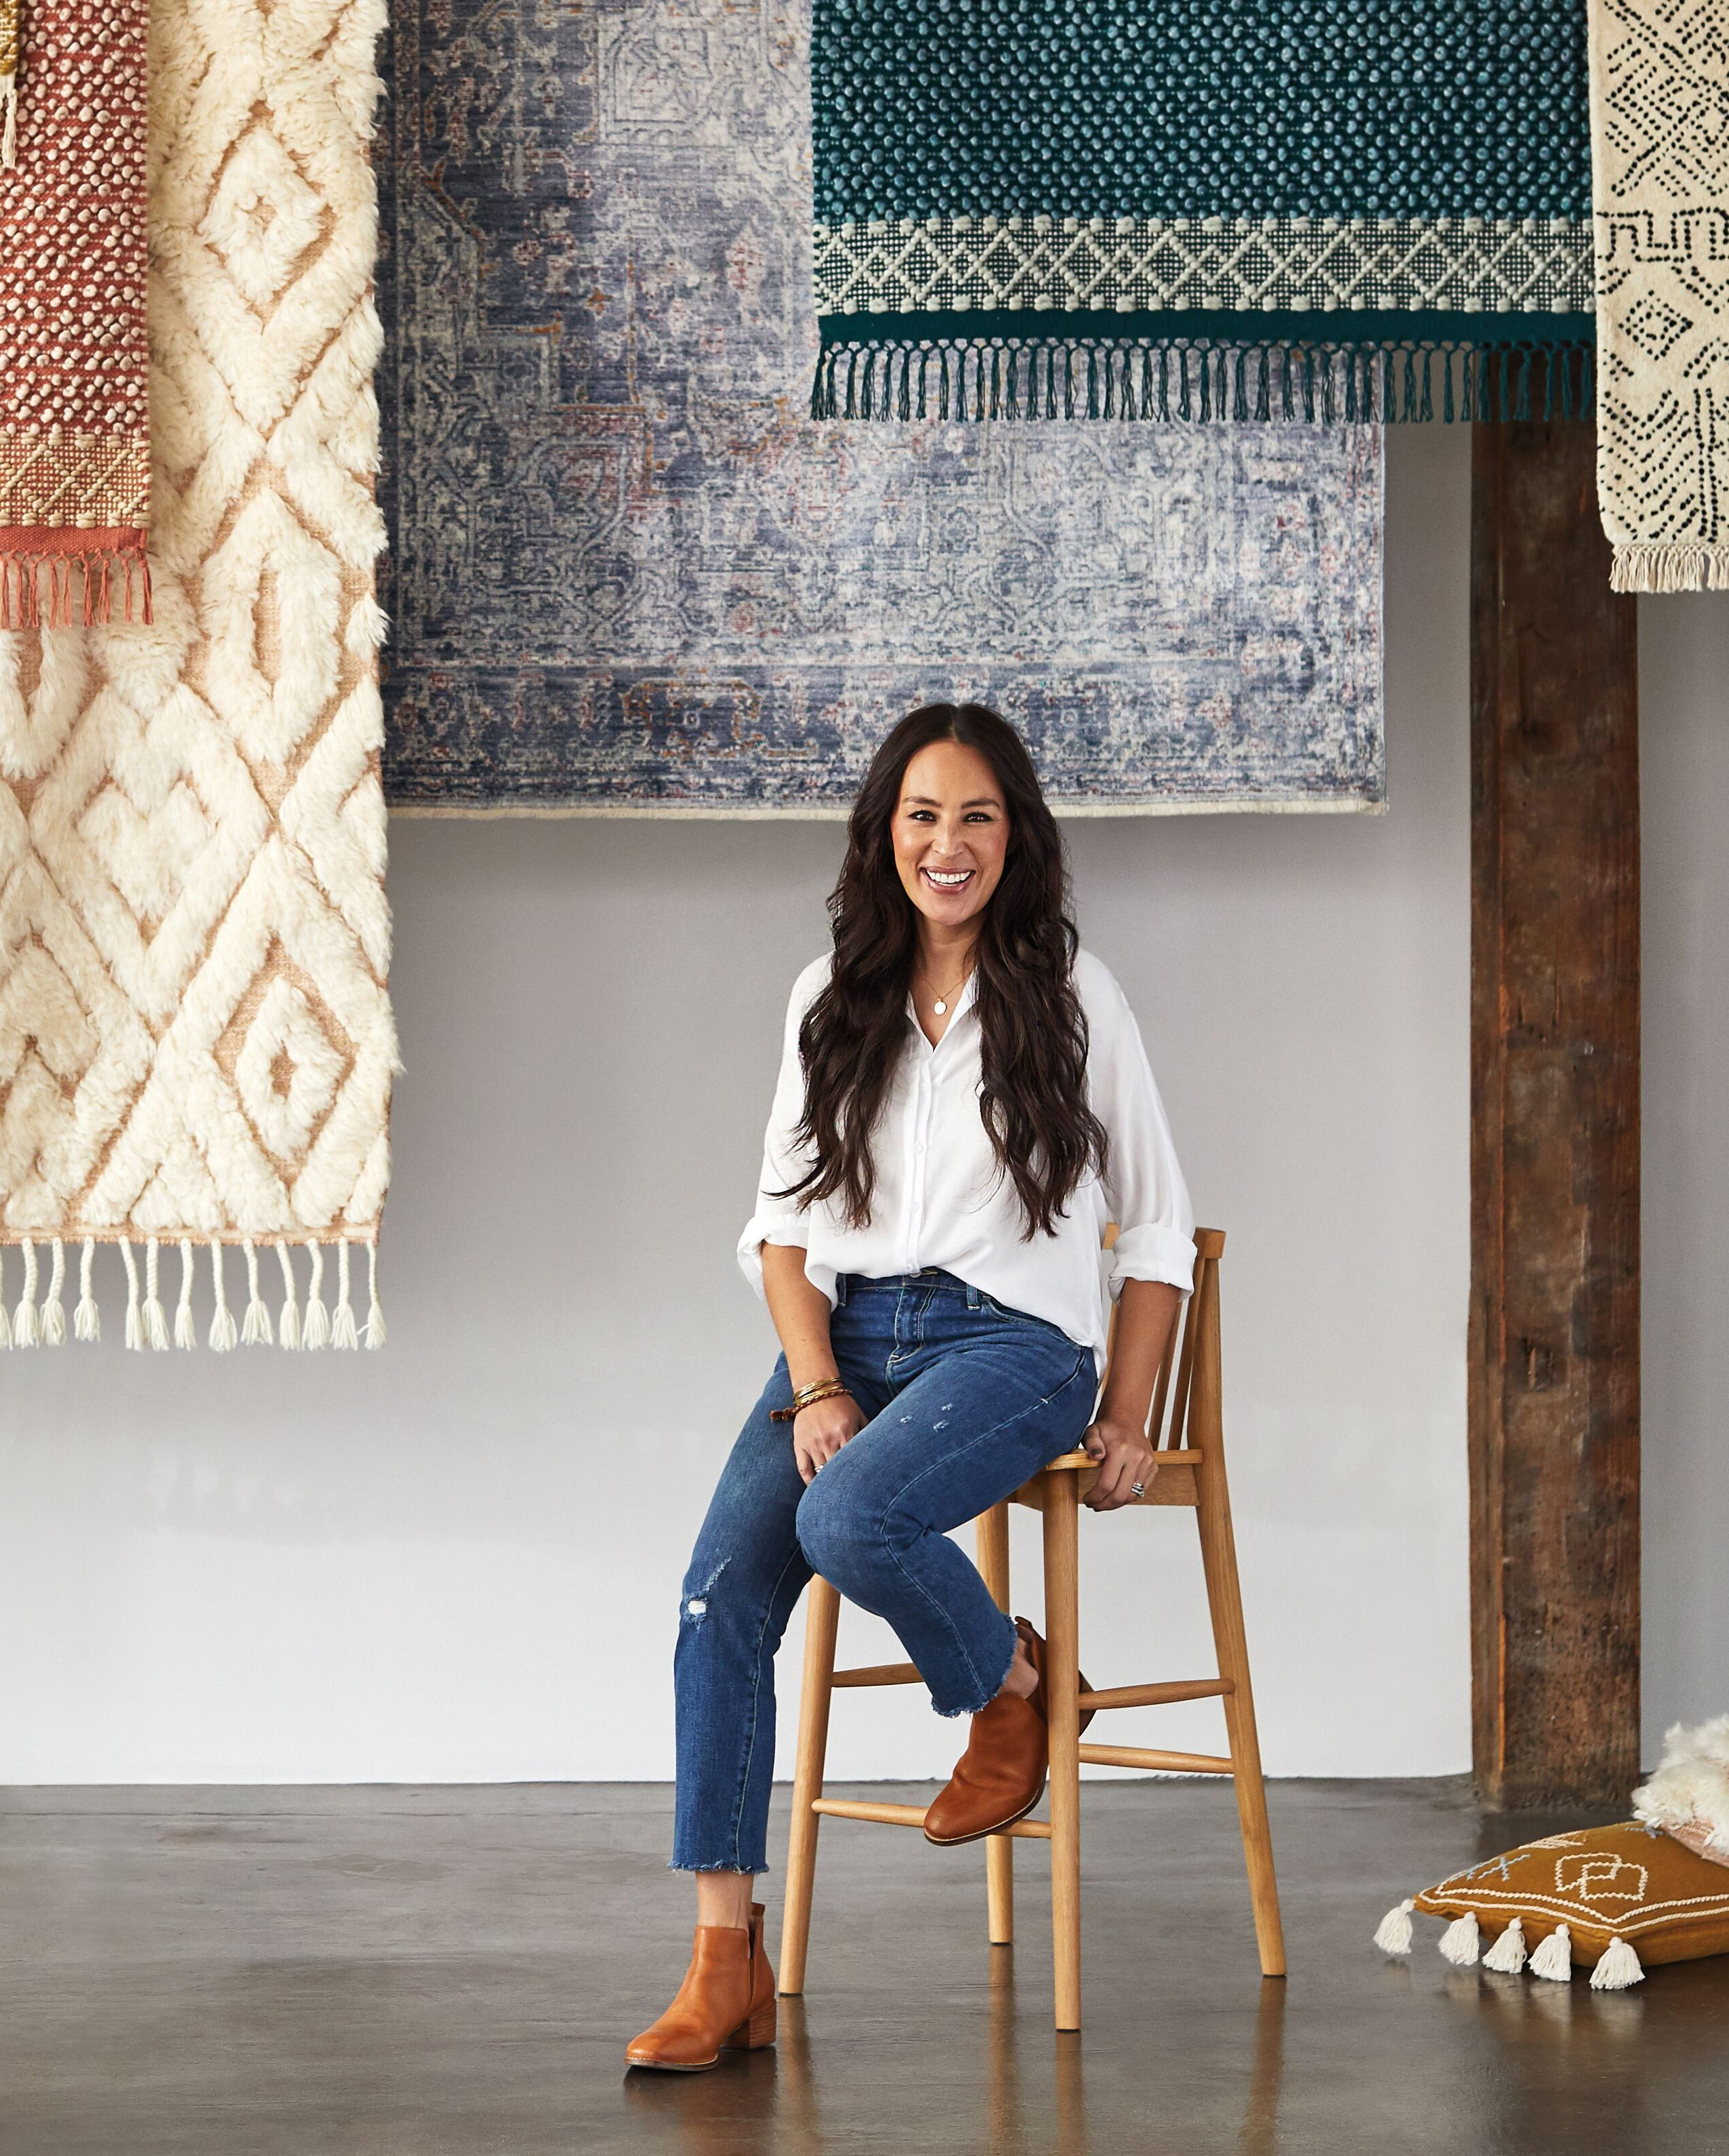 Fixer Upper's Joanna Gaines Expands Her Empire With A New Line For Anthropologie